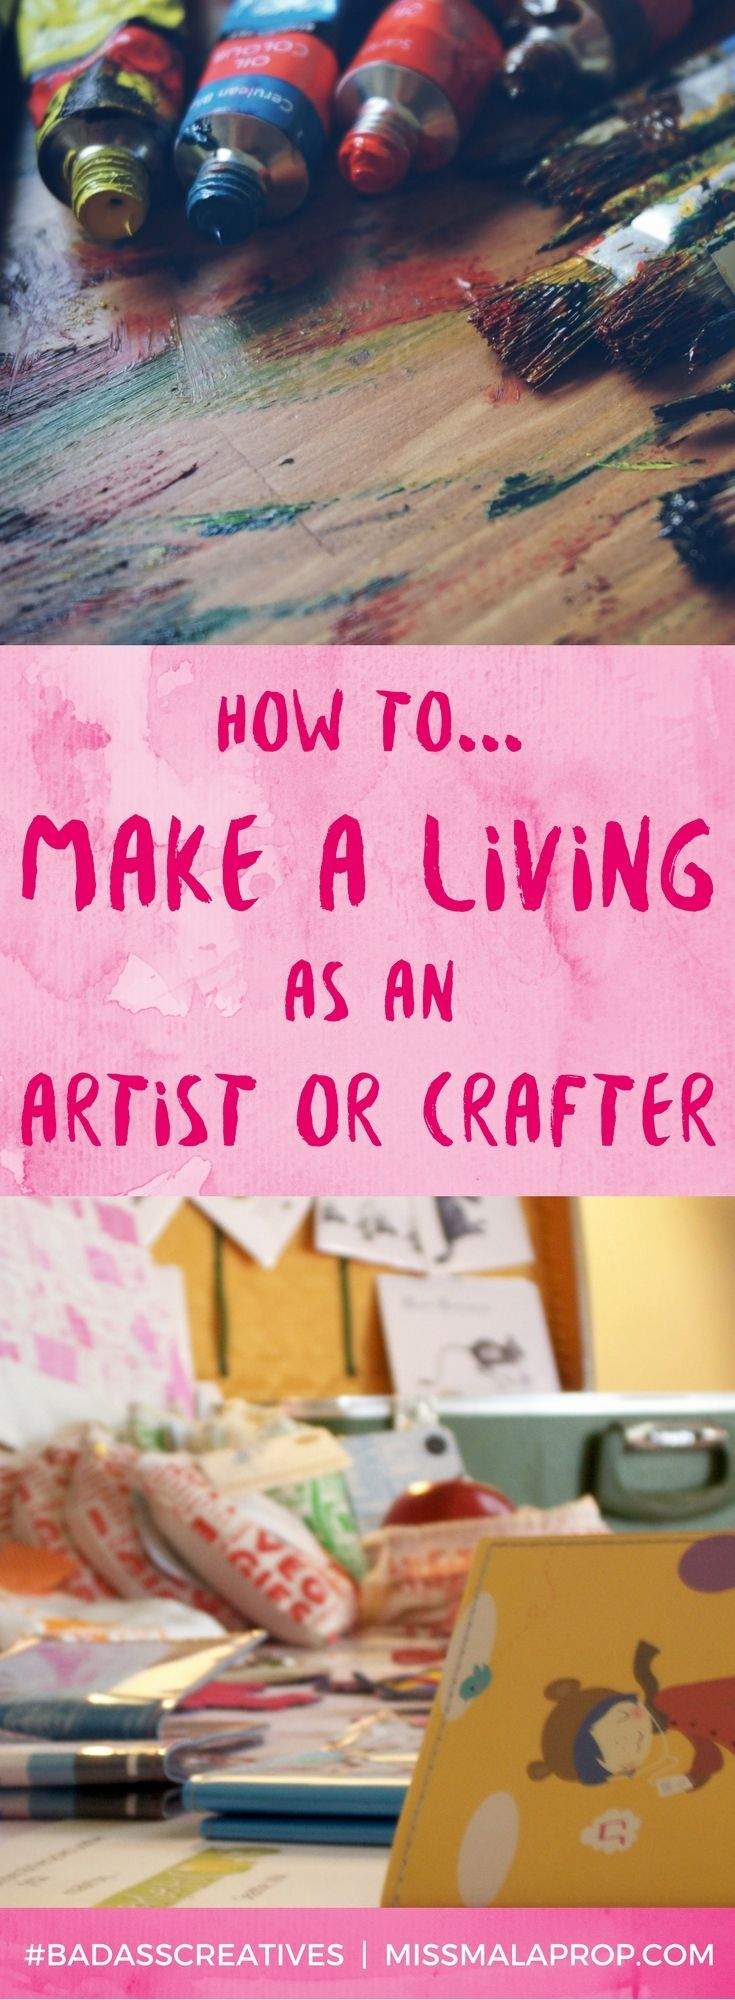 I often get asked for my advice on how to make a living as an artist or crafter! In this post, I'm sharing TONS of tips, tricks and advice for creatives.